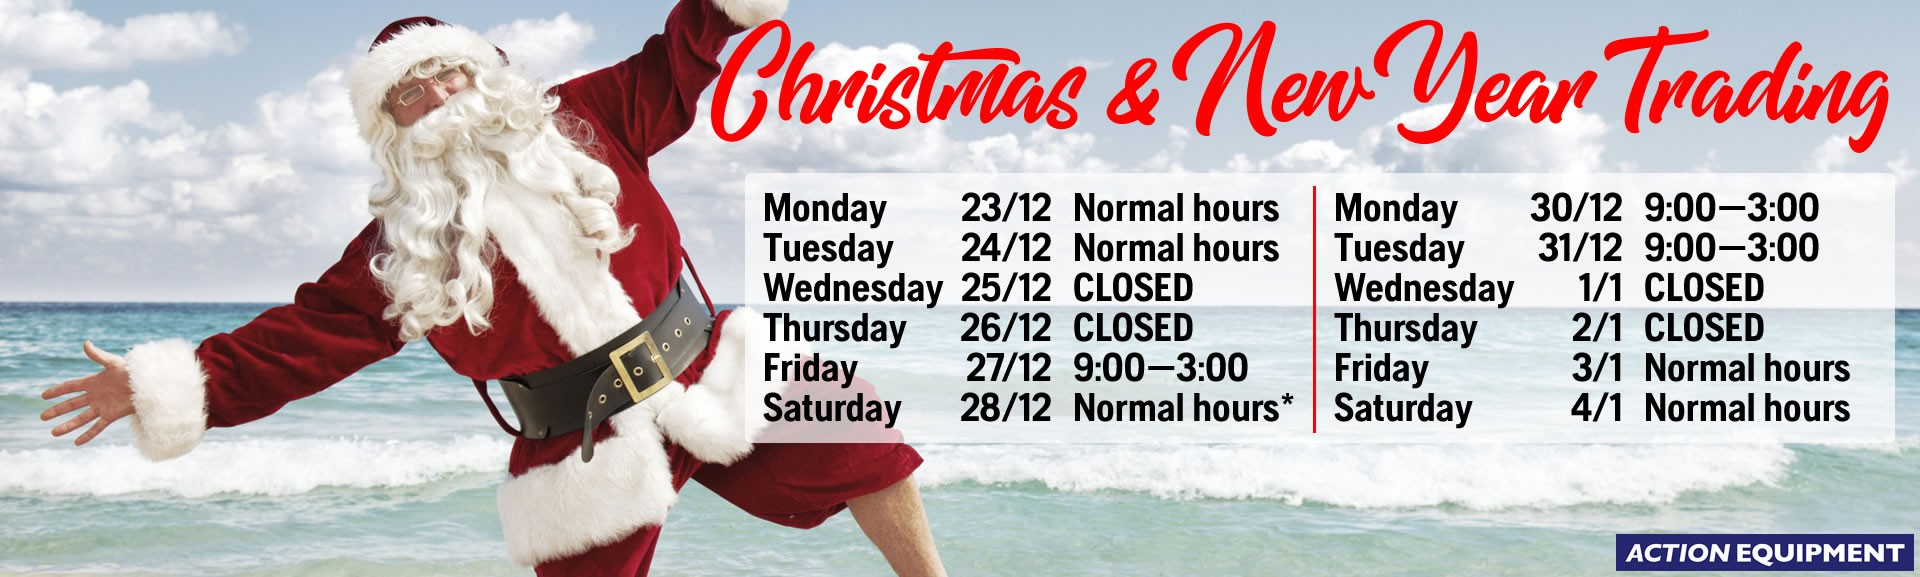 Trading hours: Christmas/New Year 2019-2020